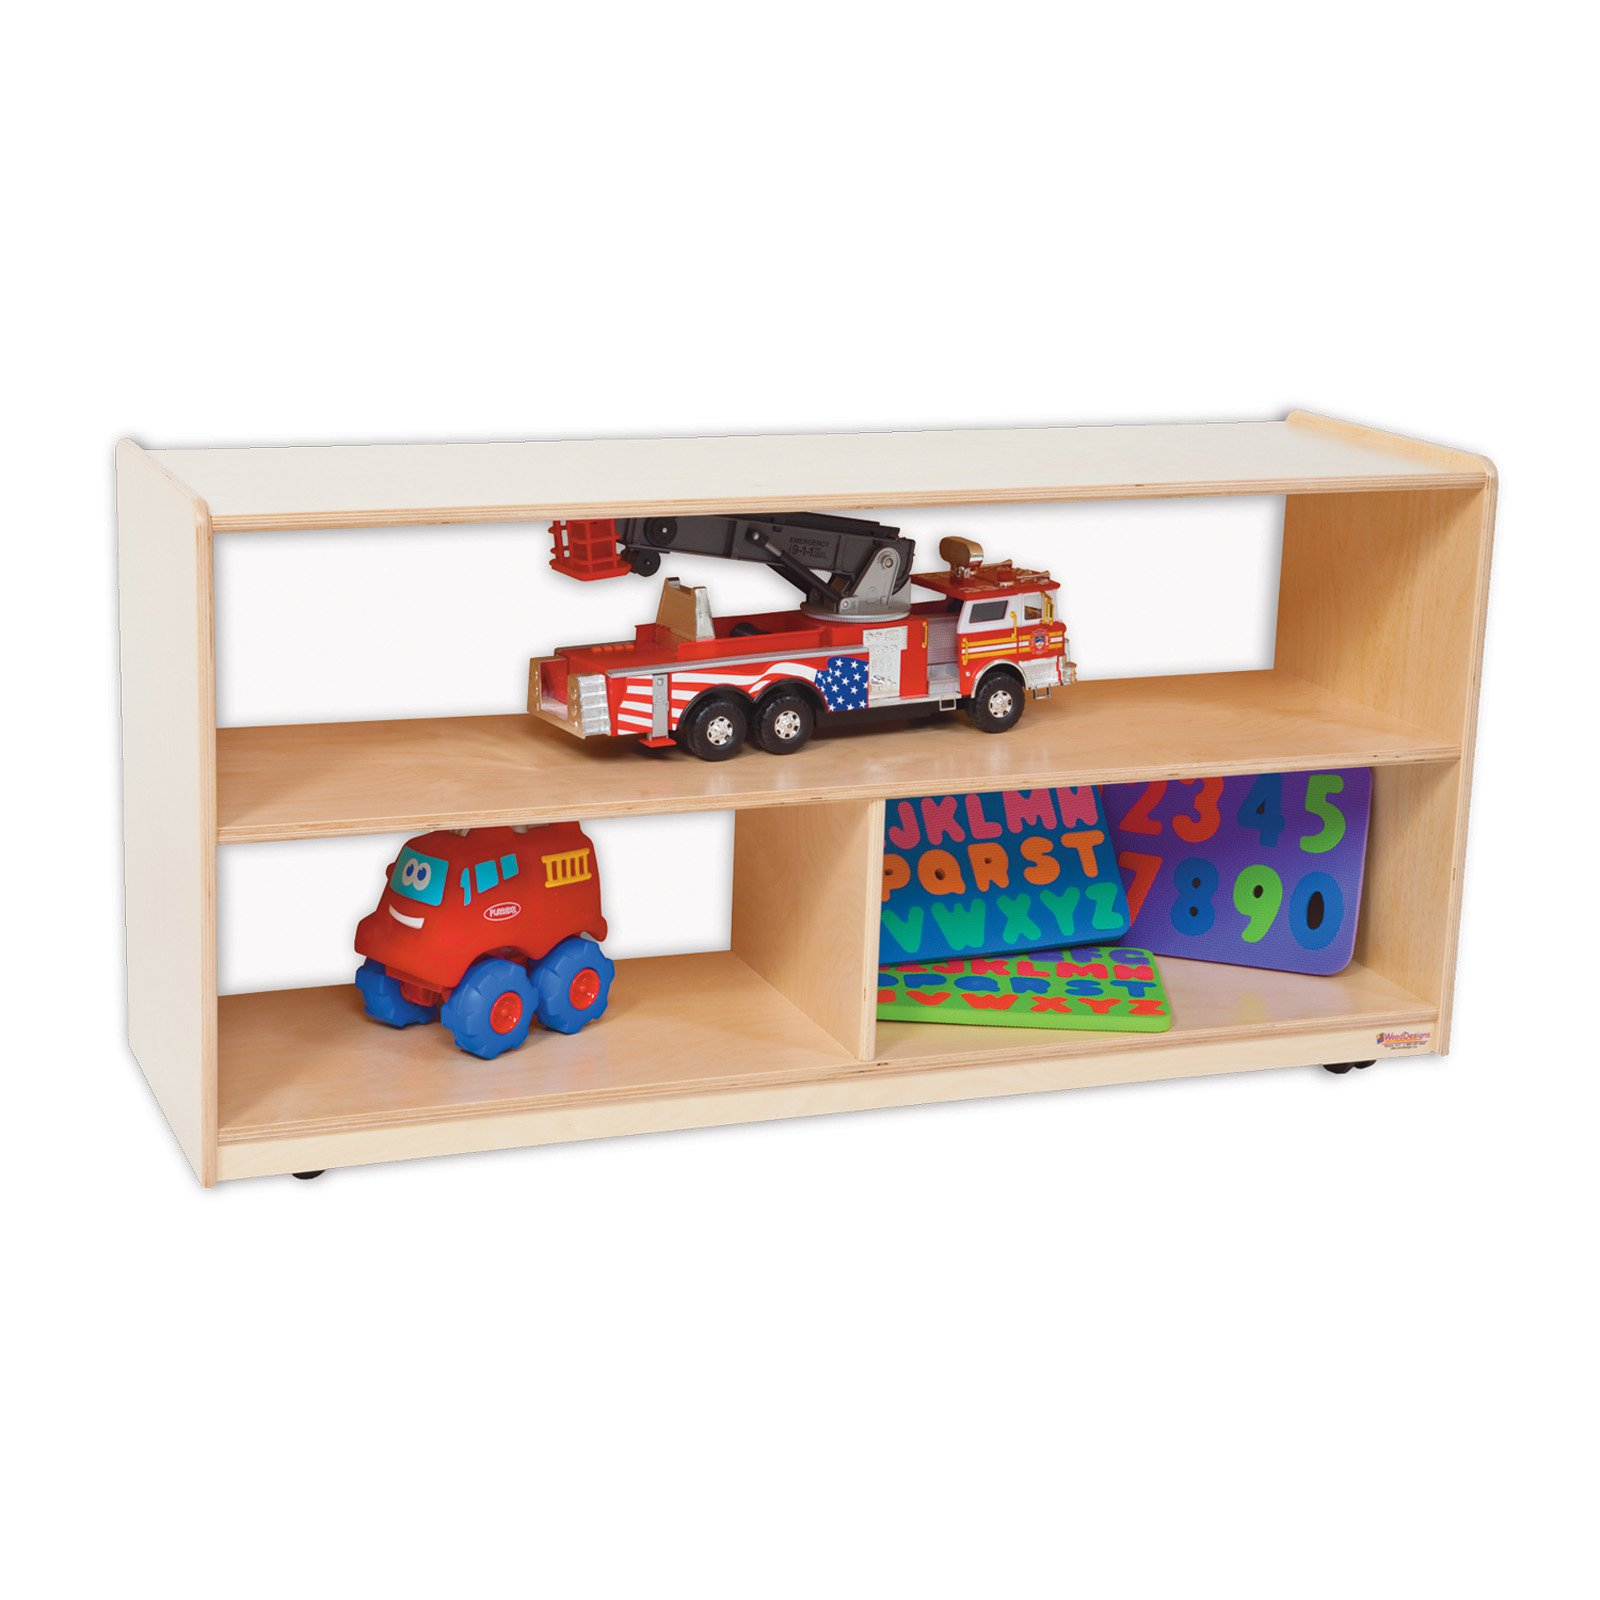 Wood Designs Versatile Shelf Storage with Acrylic Back - 24H in.